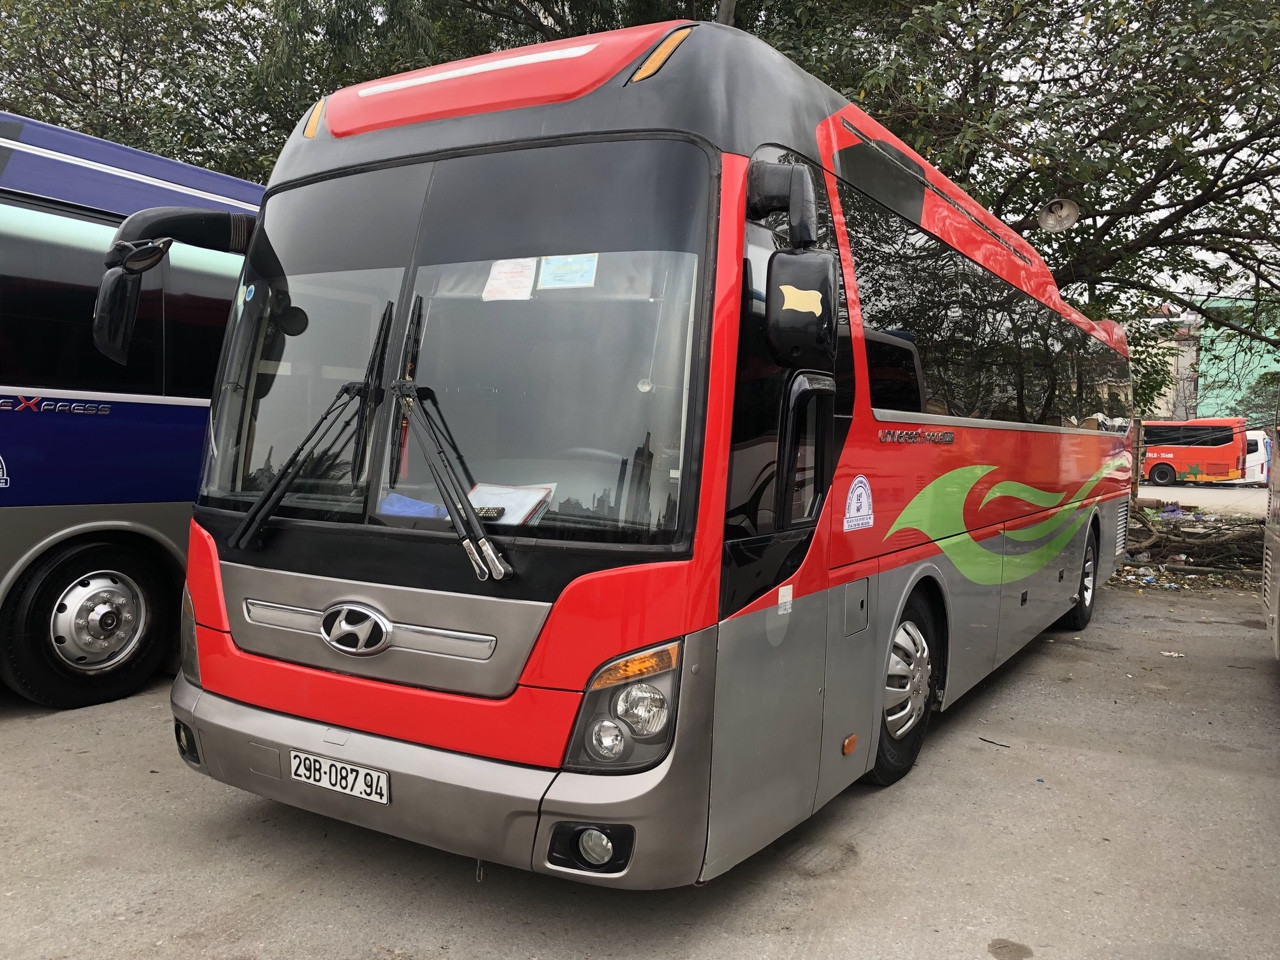 thaco-universe-47c-duong-dai-20-000d-km-city-tour-noi-thanh-2-500-000d-ngay